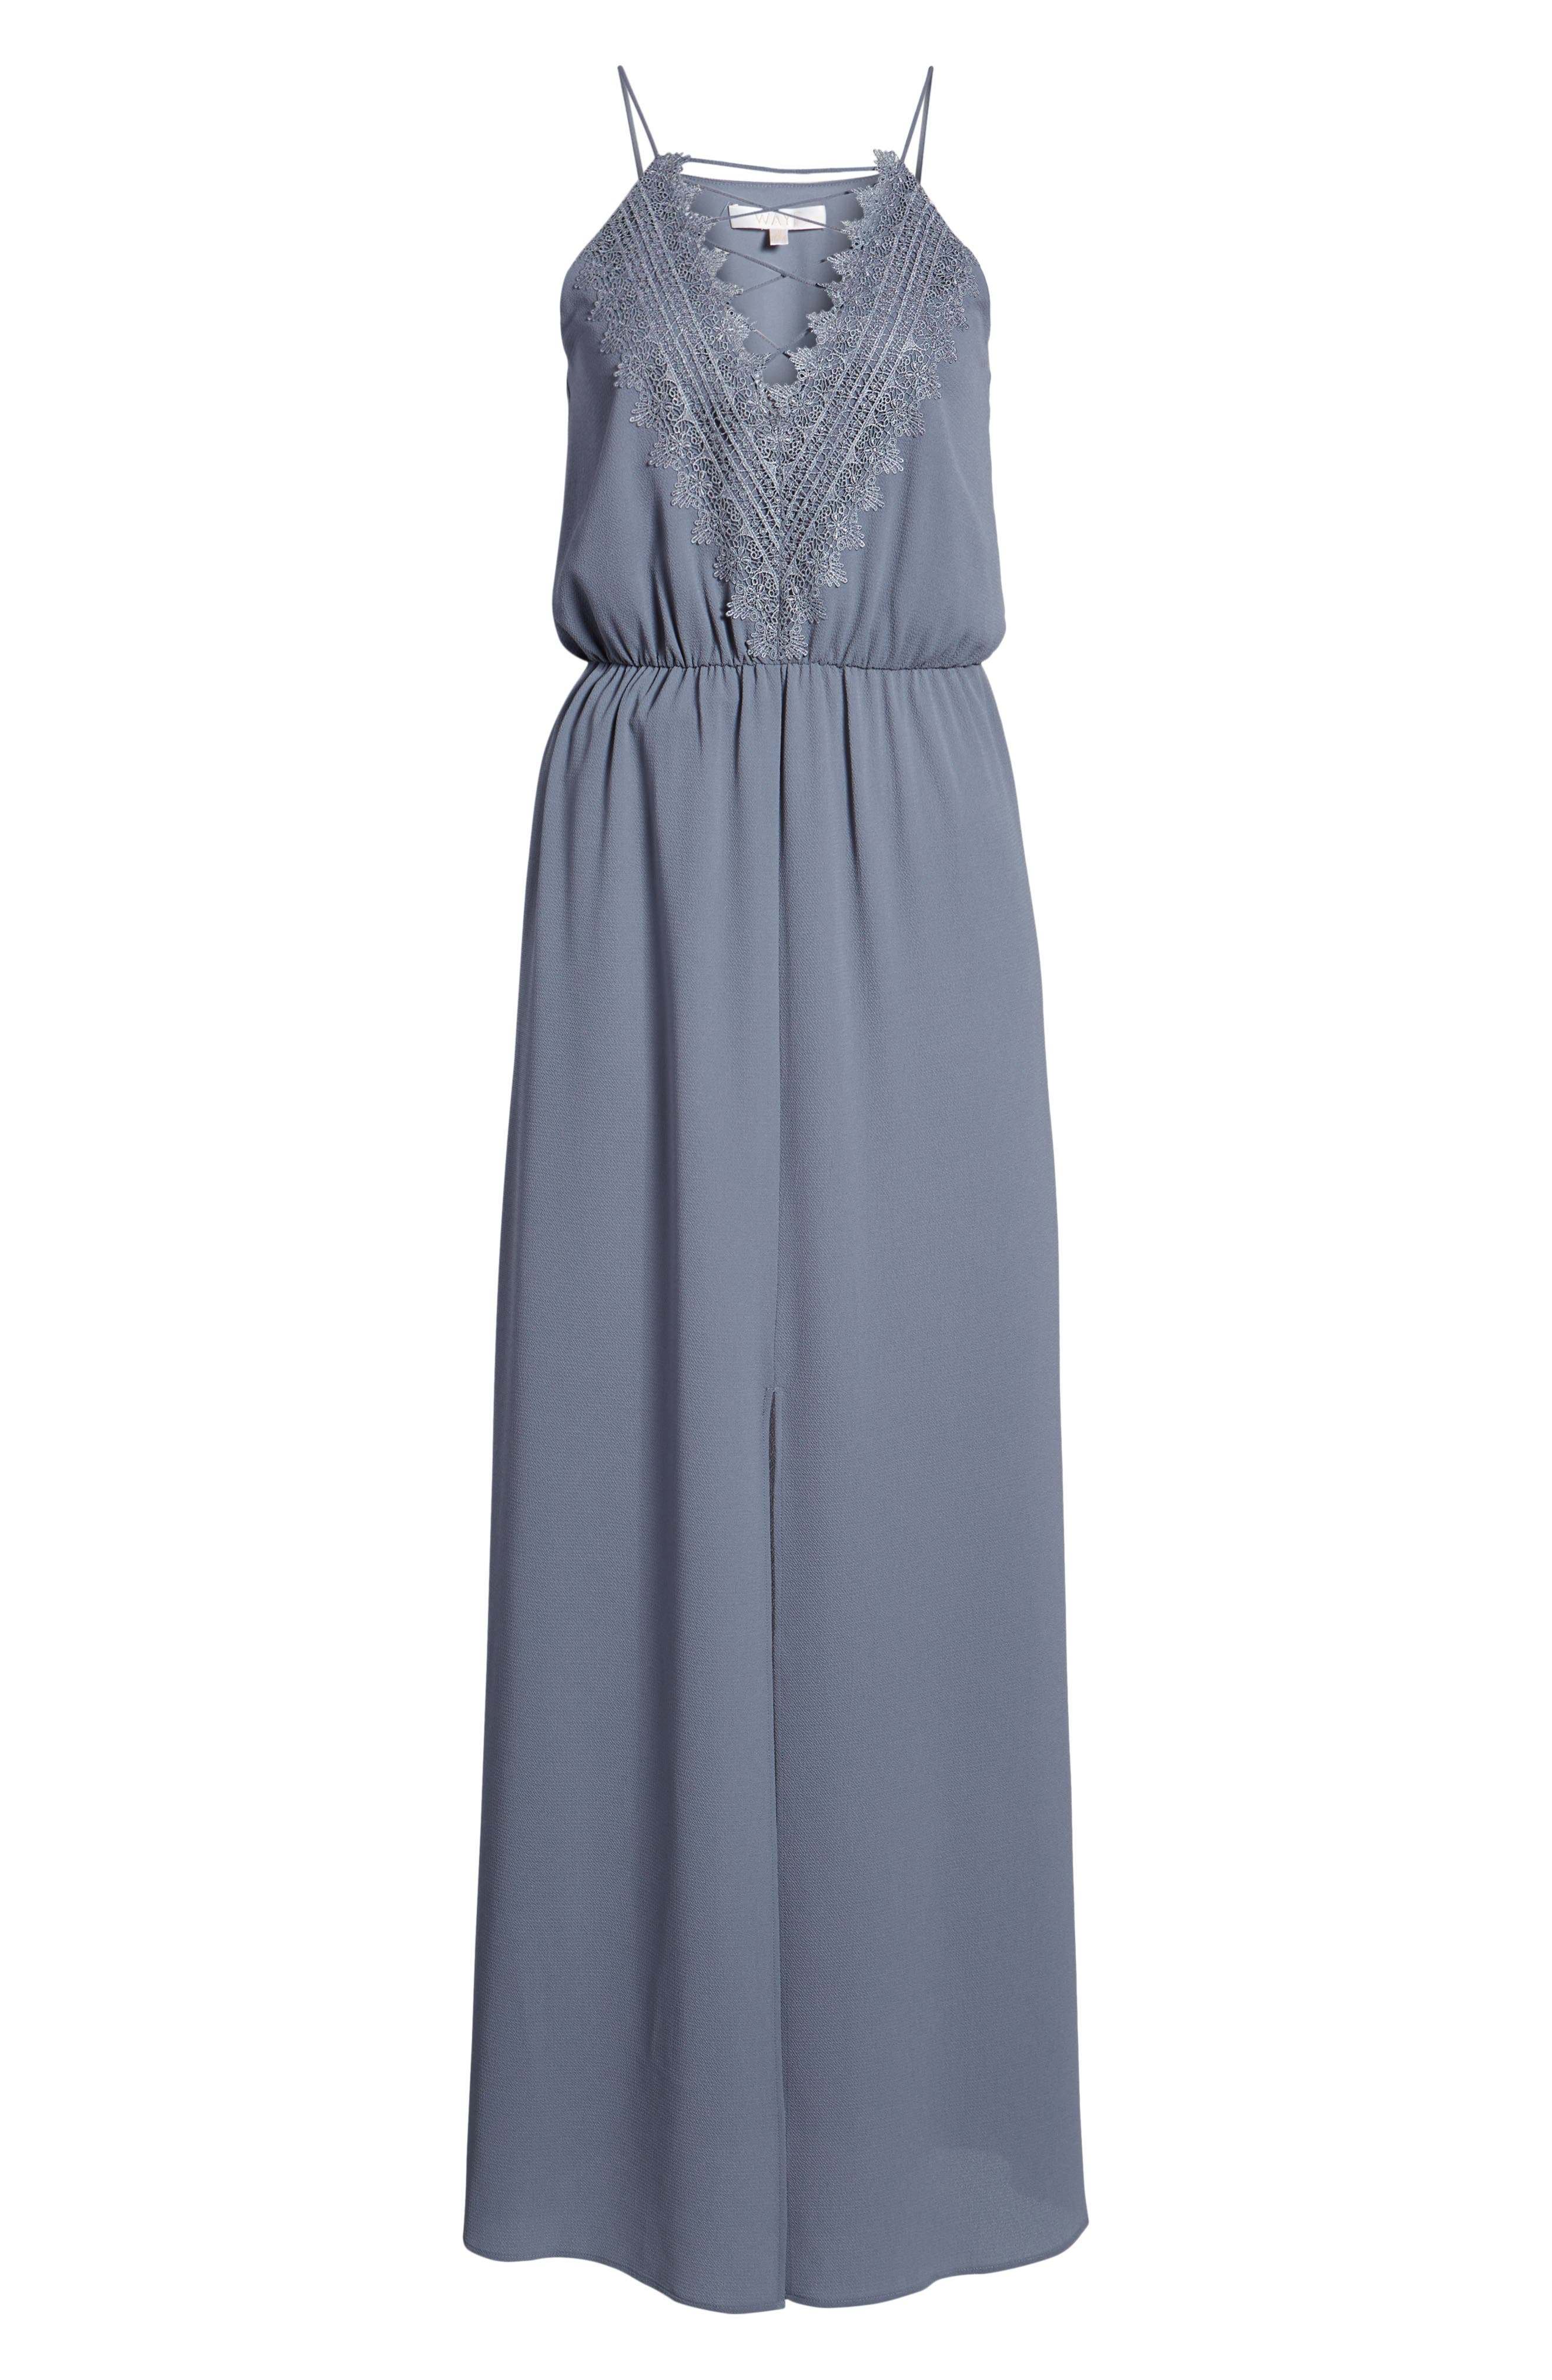 Posie Maxi Dress,                             Alternate thumbnail 7, color,                             Grey Grisaille